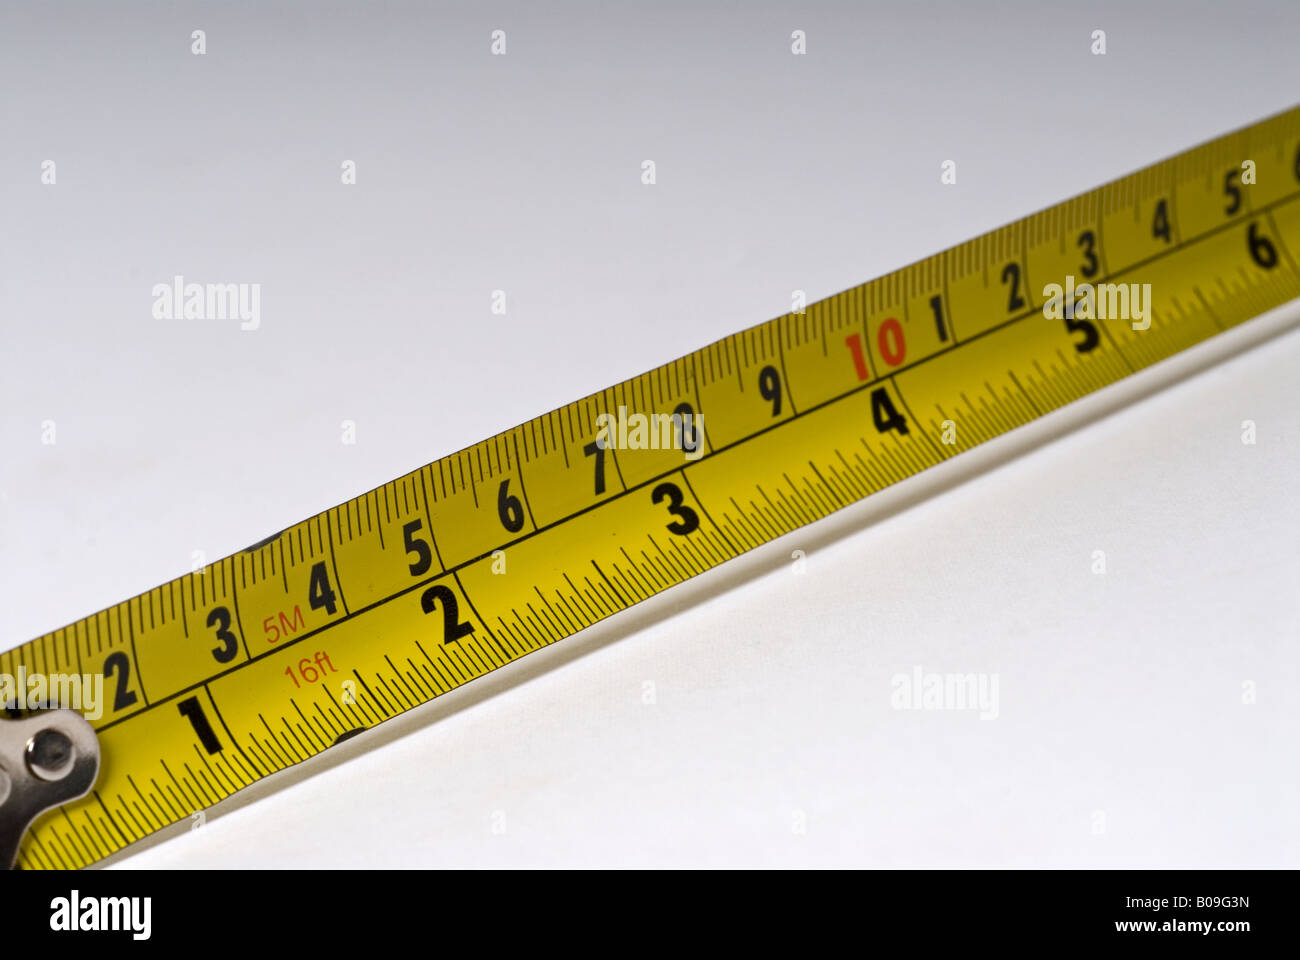 Stock photo of a tape measure showing both the metric and imperial measurements - Stock Image